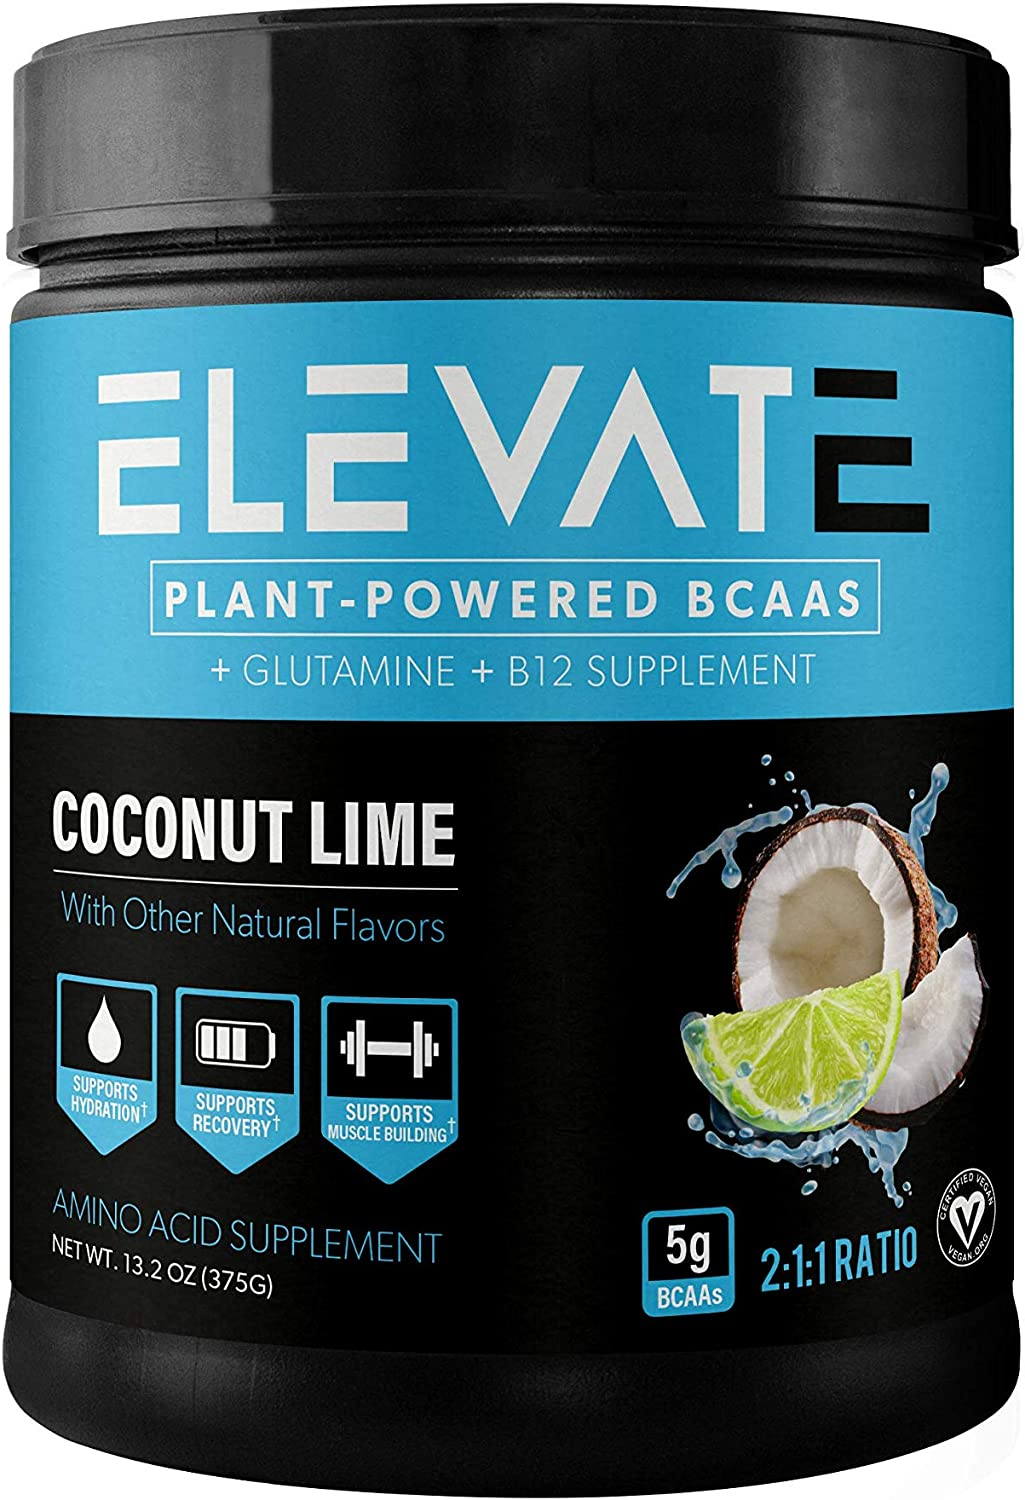 Elevate Nutrition Plant-Based Vegan BCAA Supplement for Muscle Building and Hydration- Energy Booster- All-Natural Food-Sourced BCAA 2 1 1 Ratio- Glutamine, B12, Non-GMO Coconut Lime